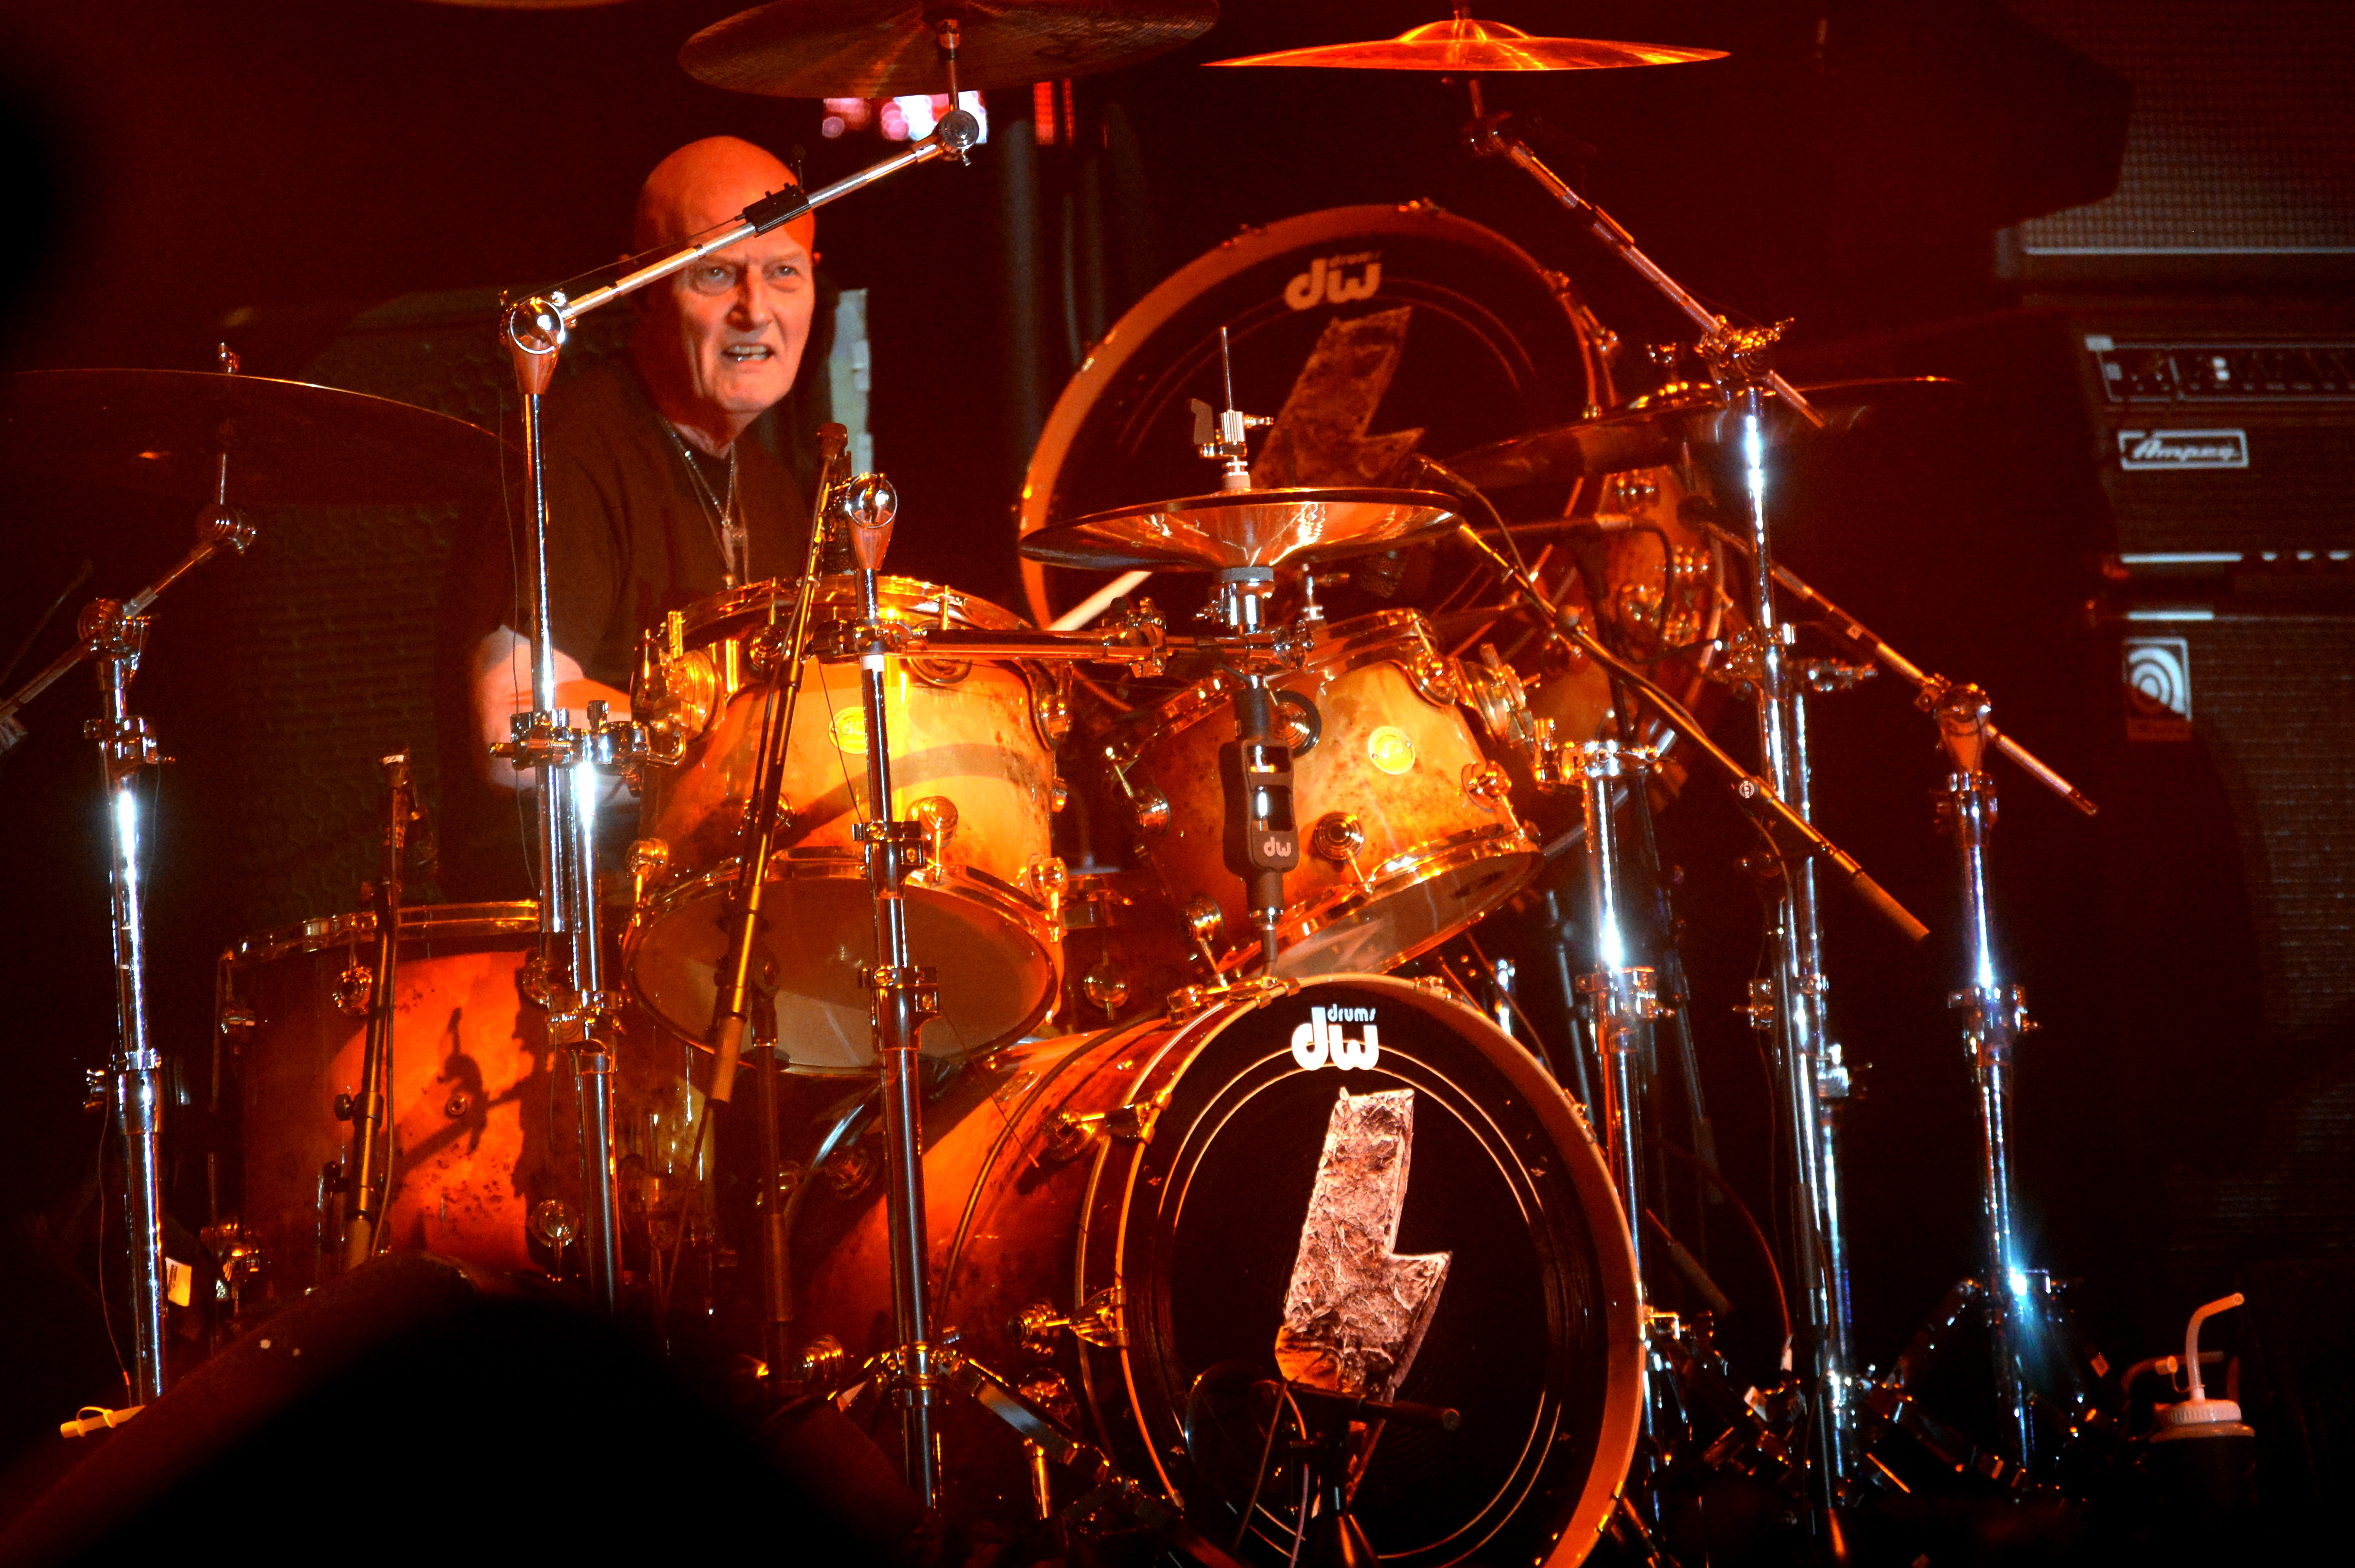 INDIO, CA - APRIL 10: Musician Chris Slade of AC/DC performs onstage during day 1 of the 2015 Coachella Valley Music & Ar